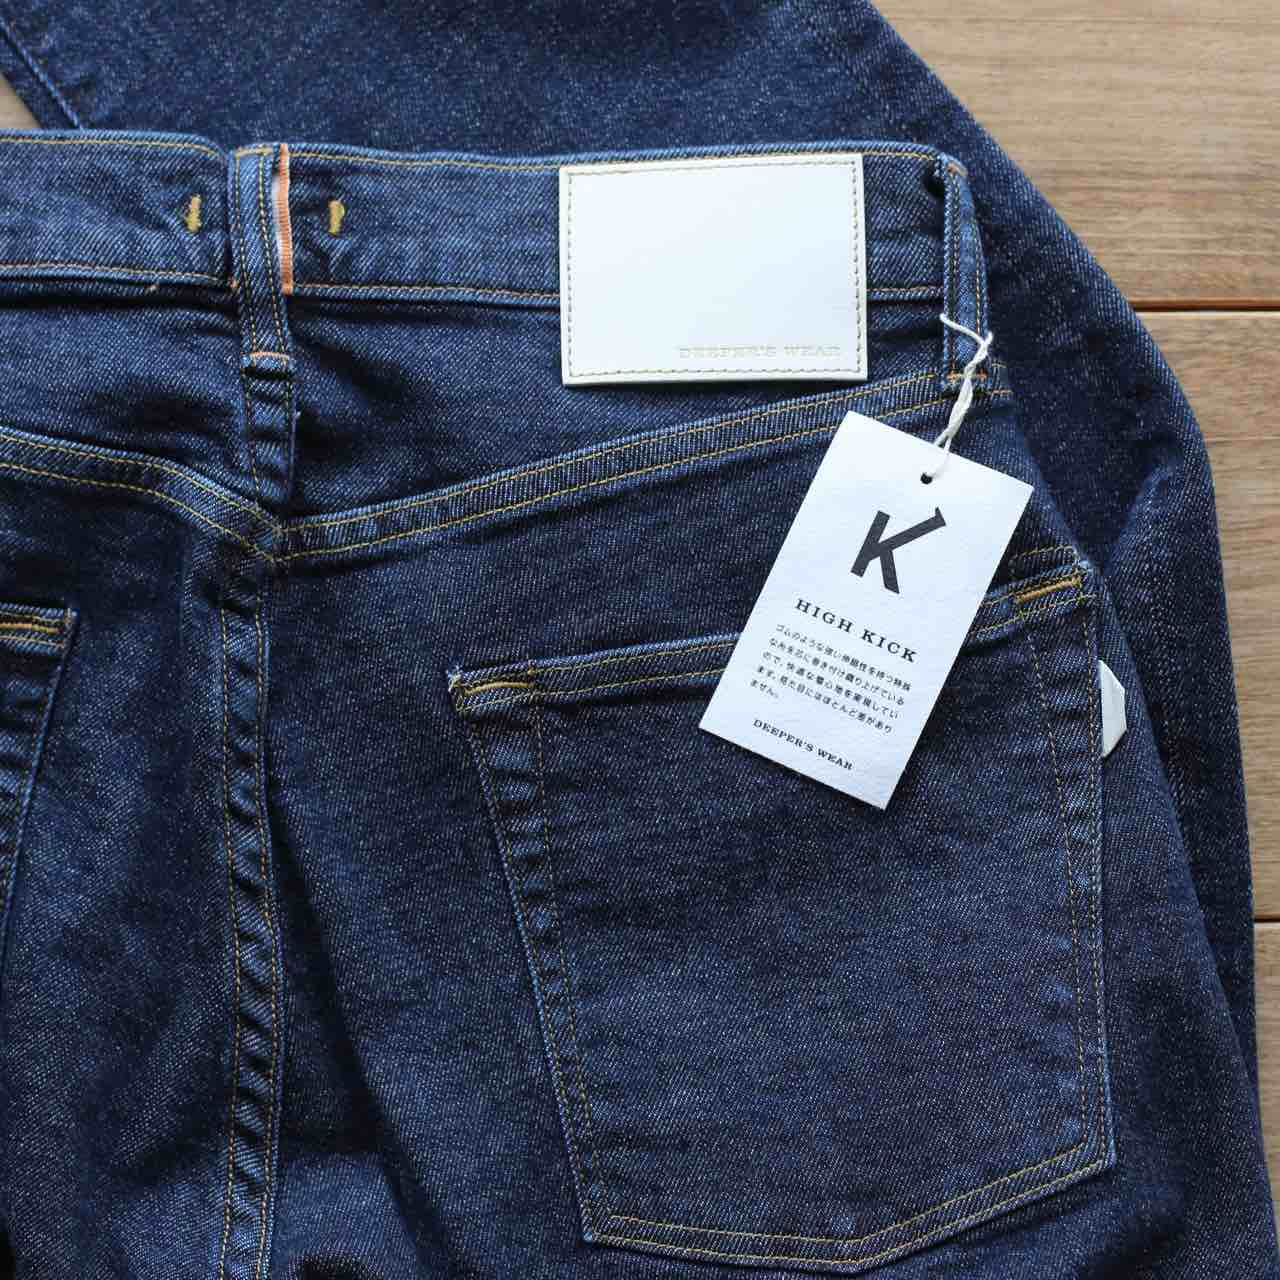 HIGH KICK JEANS ハイキックジーンズ ALL YOURS オールユアーズ